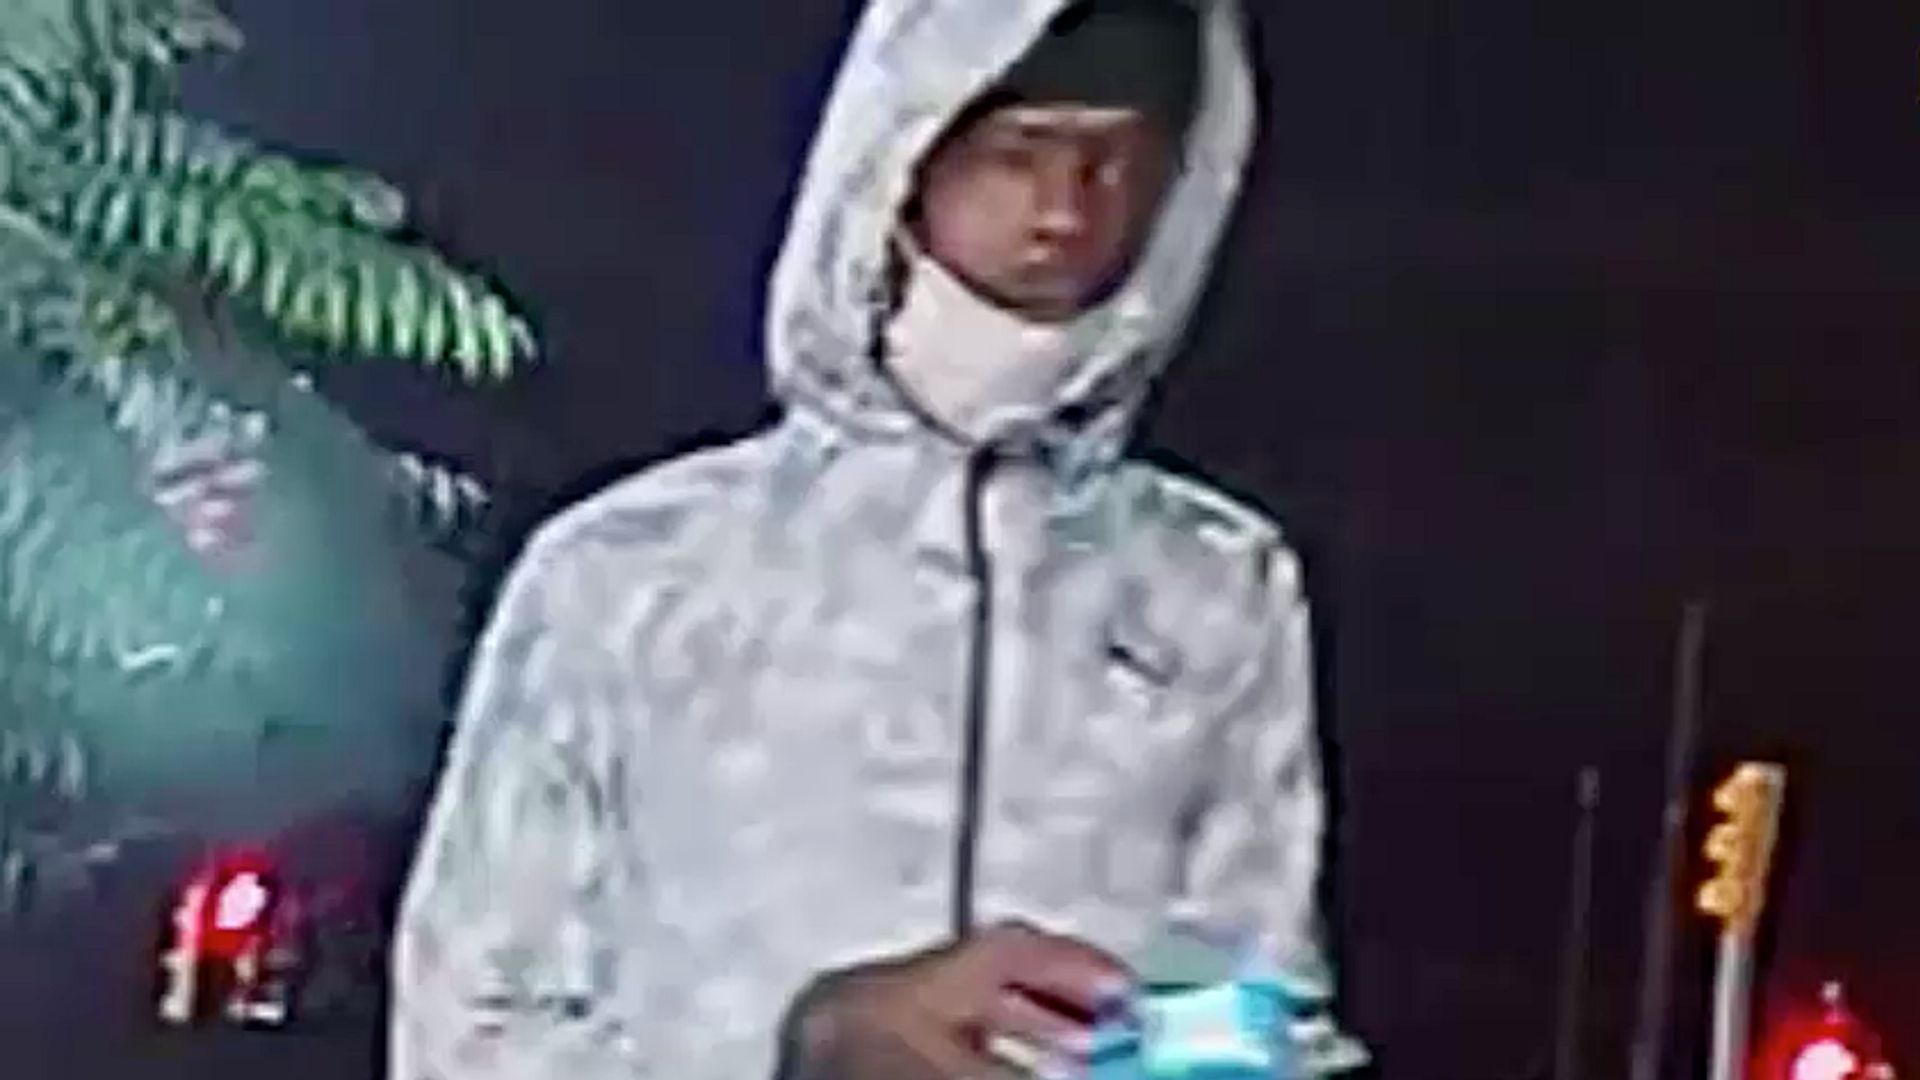 Man wanted in connection with an attack and attempted rape in the Bronx